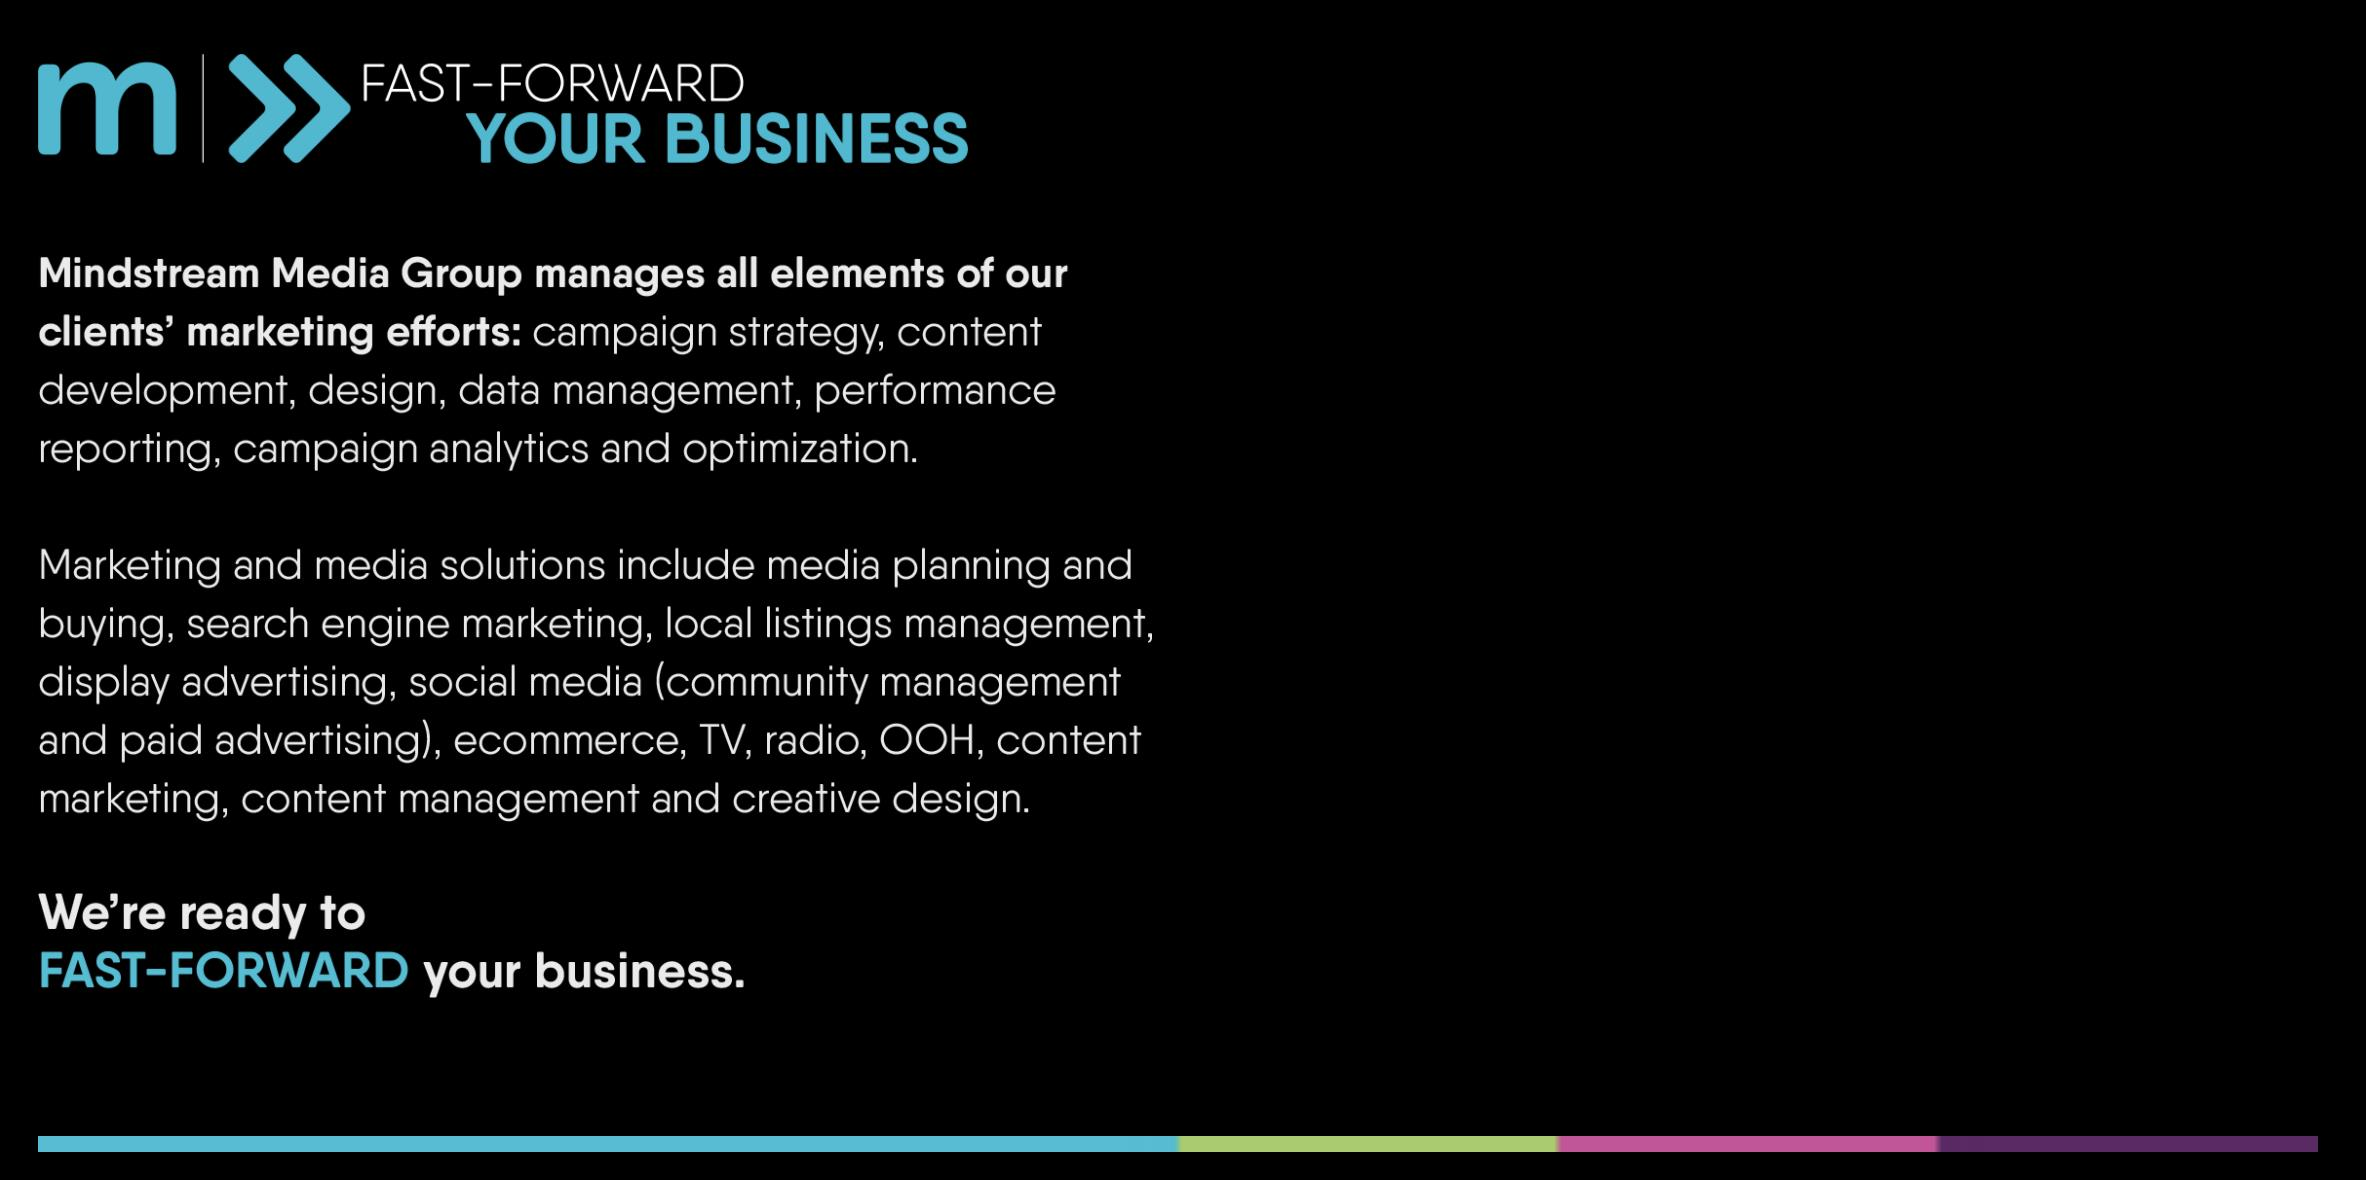 Mindstream Media Group Helps Fast-Forward Your Business